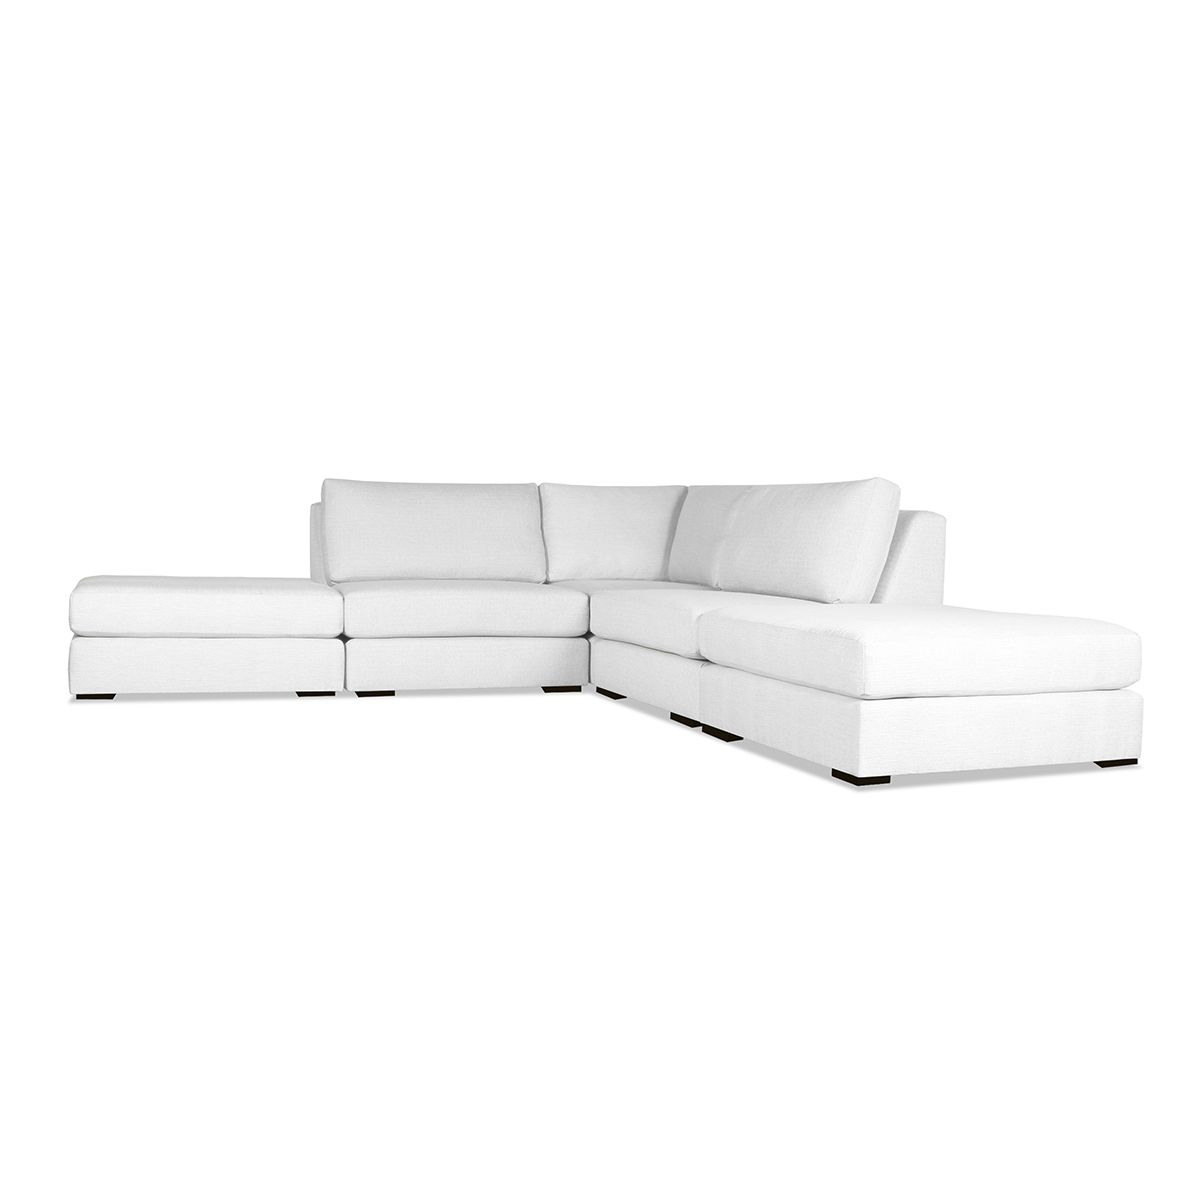 Yorkshire Modular L Shape Simple Sectional | Sectional sofa